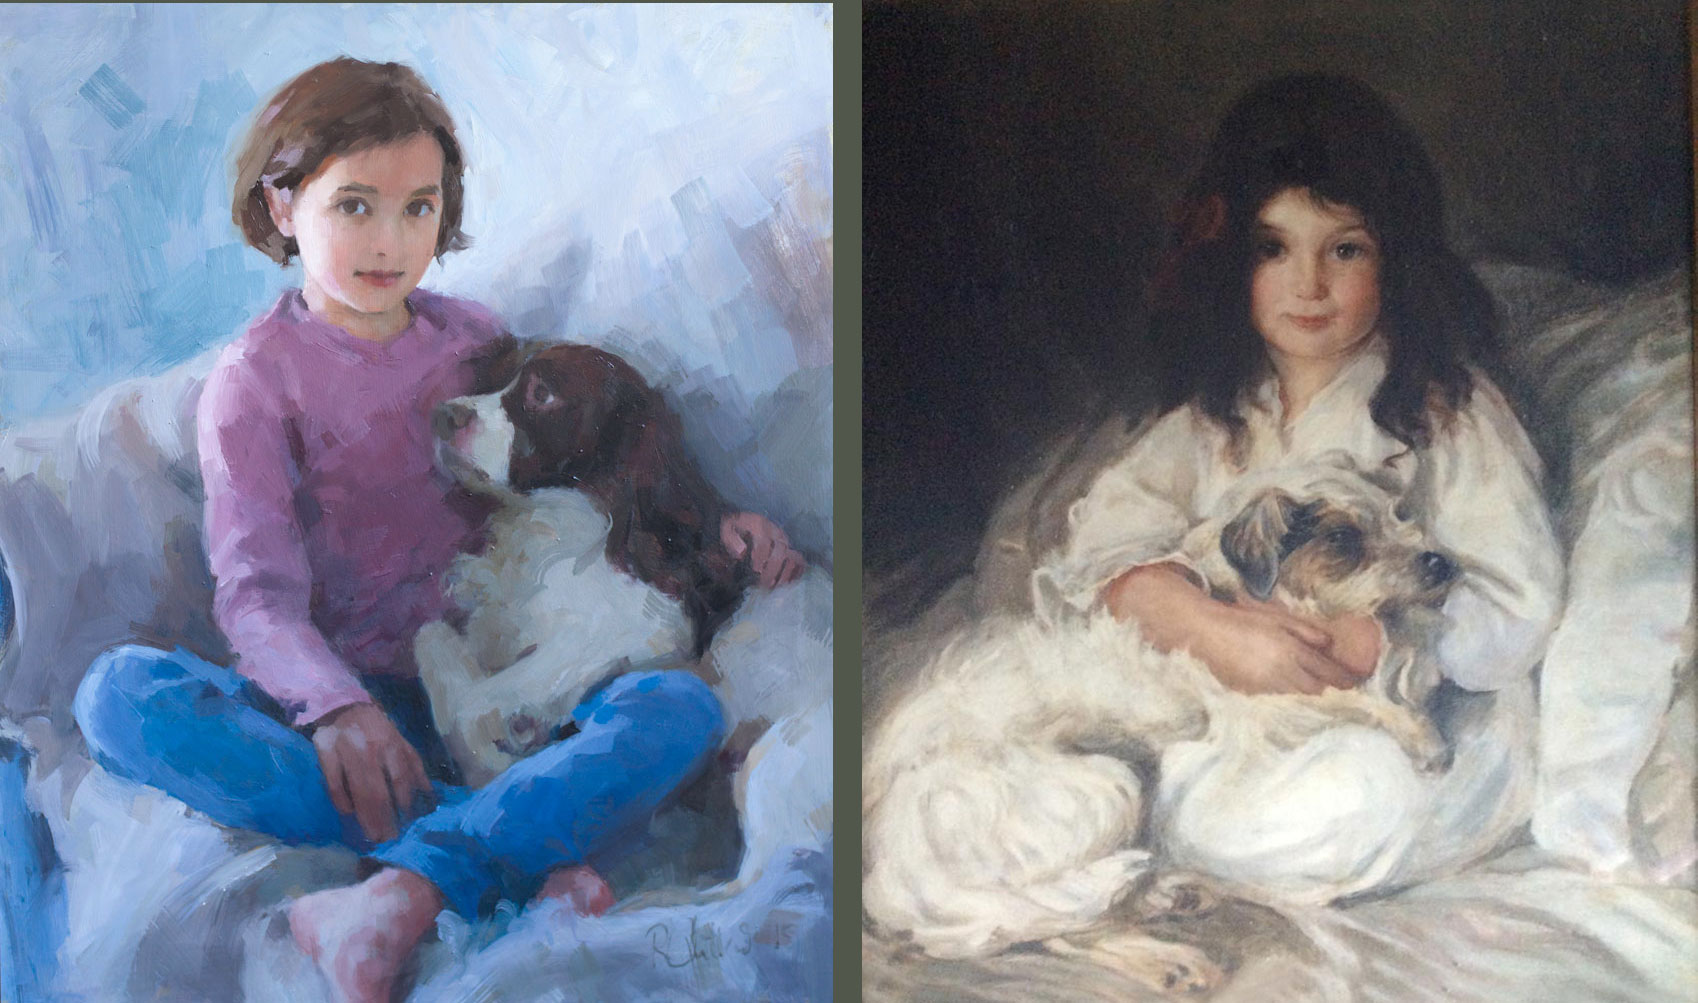 portraits of the two young girls and their dogs 100 years apart